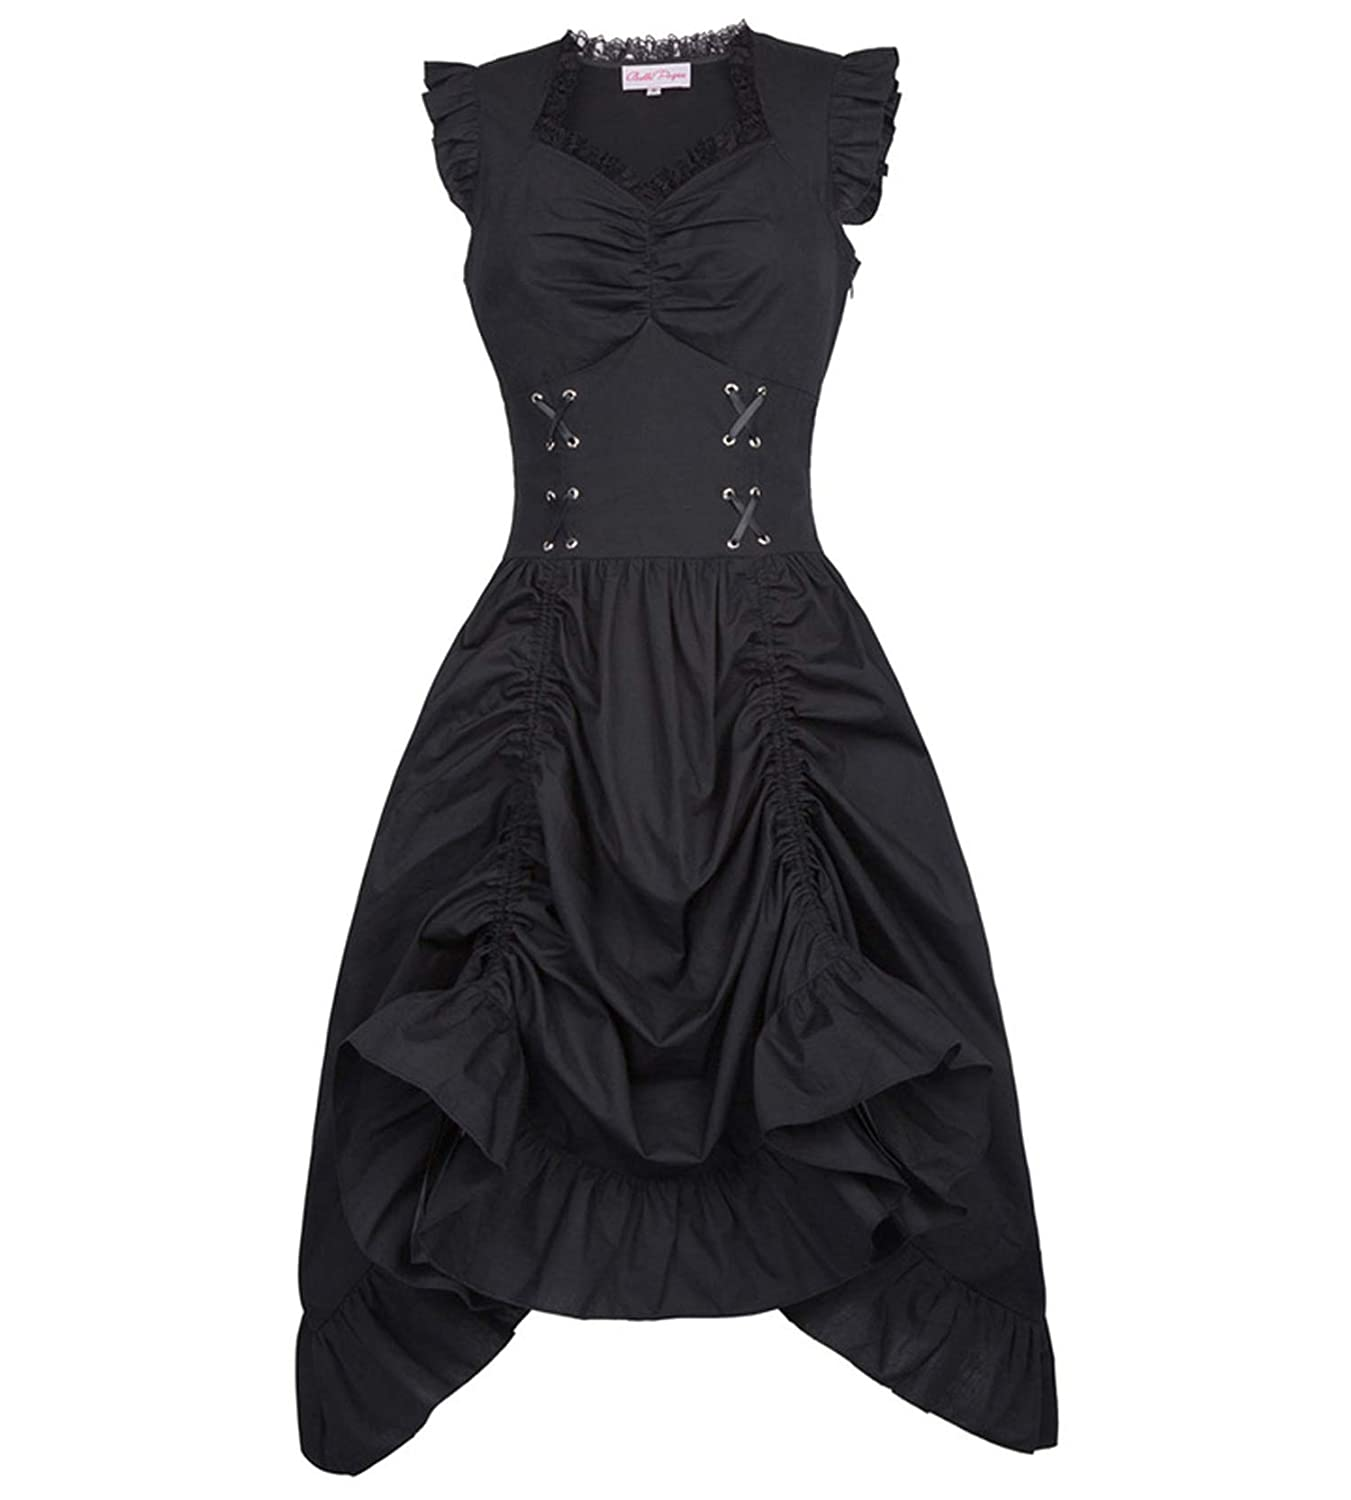 MEET ME-punk dress Sleeveless V-Neck Lace-up Corset Ruffle Dress Retro Vintage Steampunk Black Punk Gothic Victorian Dress at Amazon Womens Clothing store: